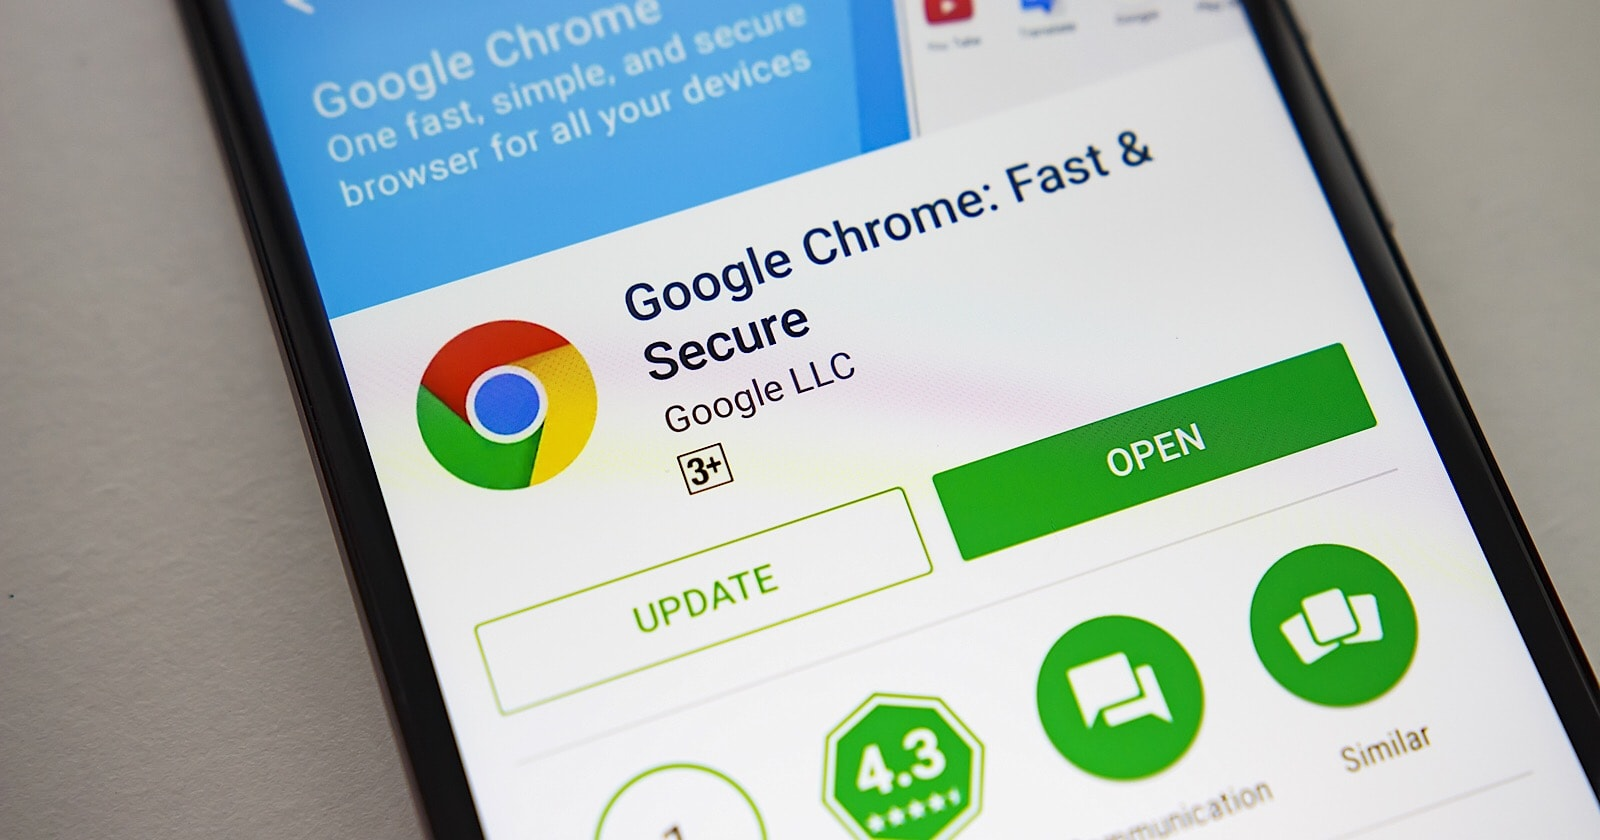 Google Chrome Browser for Android and iOS Devices